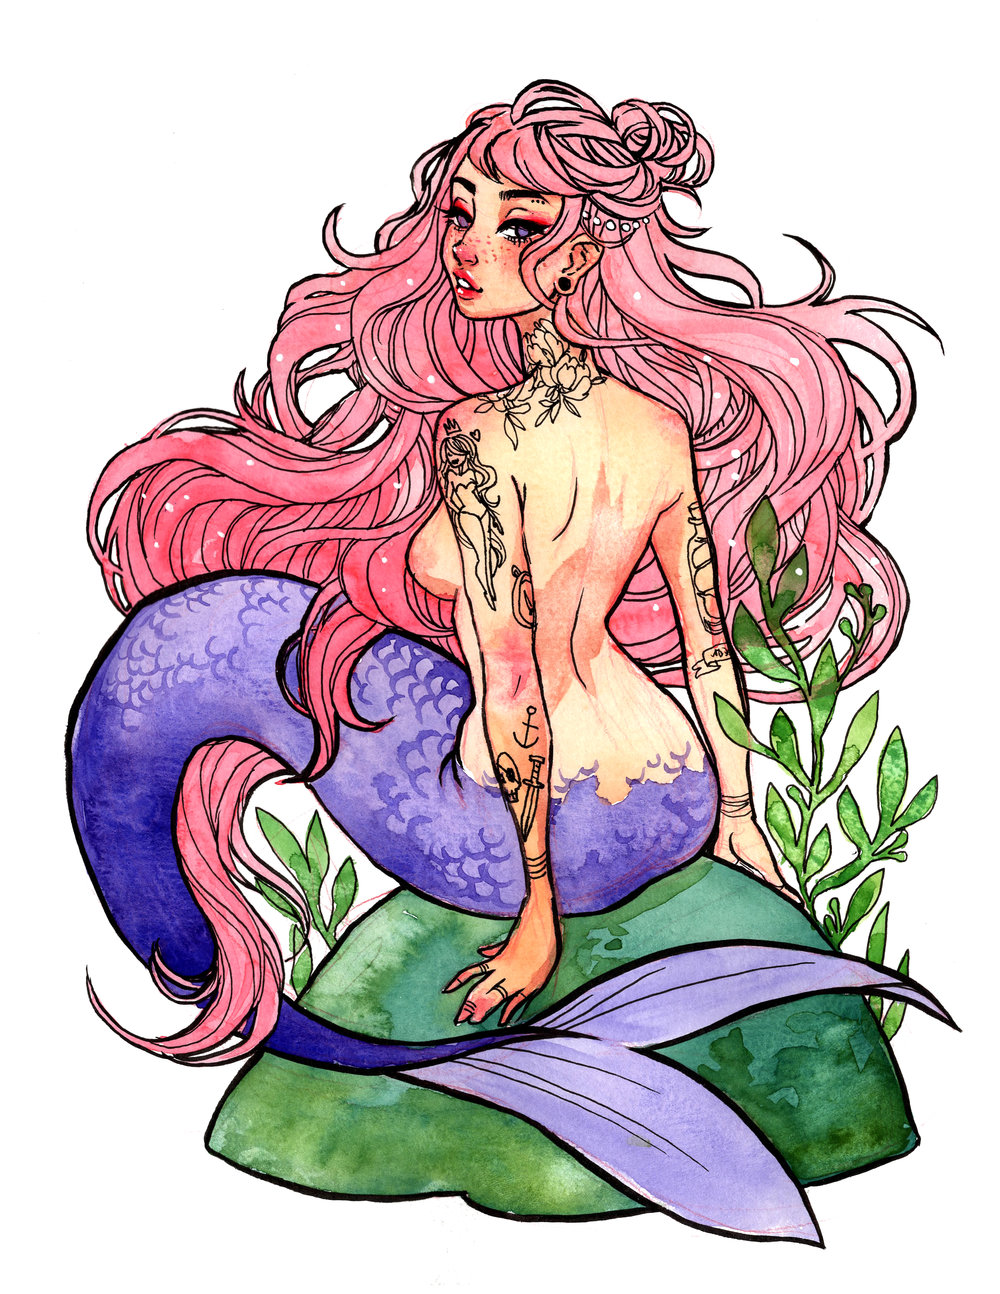 sultry mermaid print.jpg